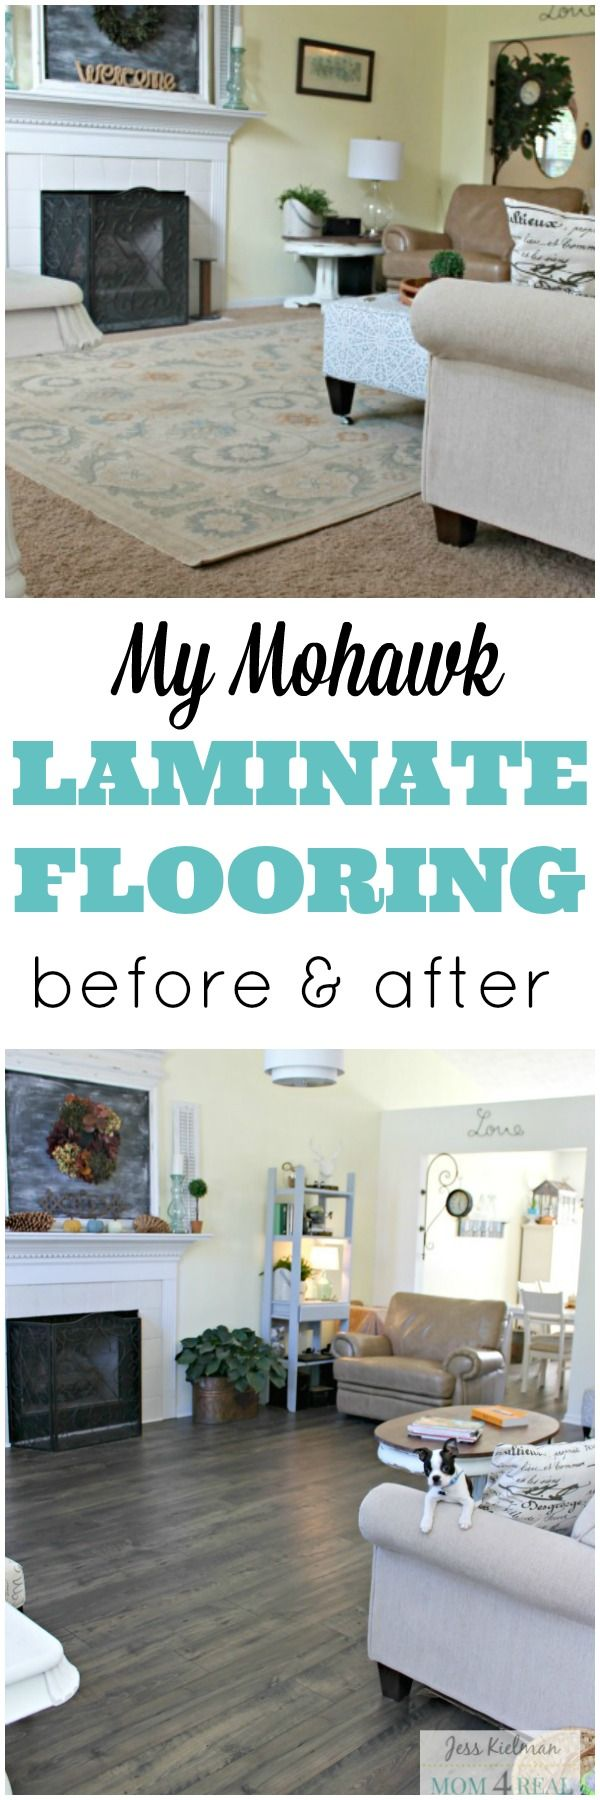 In this post, I want to share the before and after photos of our new Mohawk Laminate Floors! I am so excited to share the final before and after photos of our new Mohawk Laminate Floors! We are so greatful to have teamed up with Mohawk...Read More »